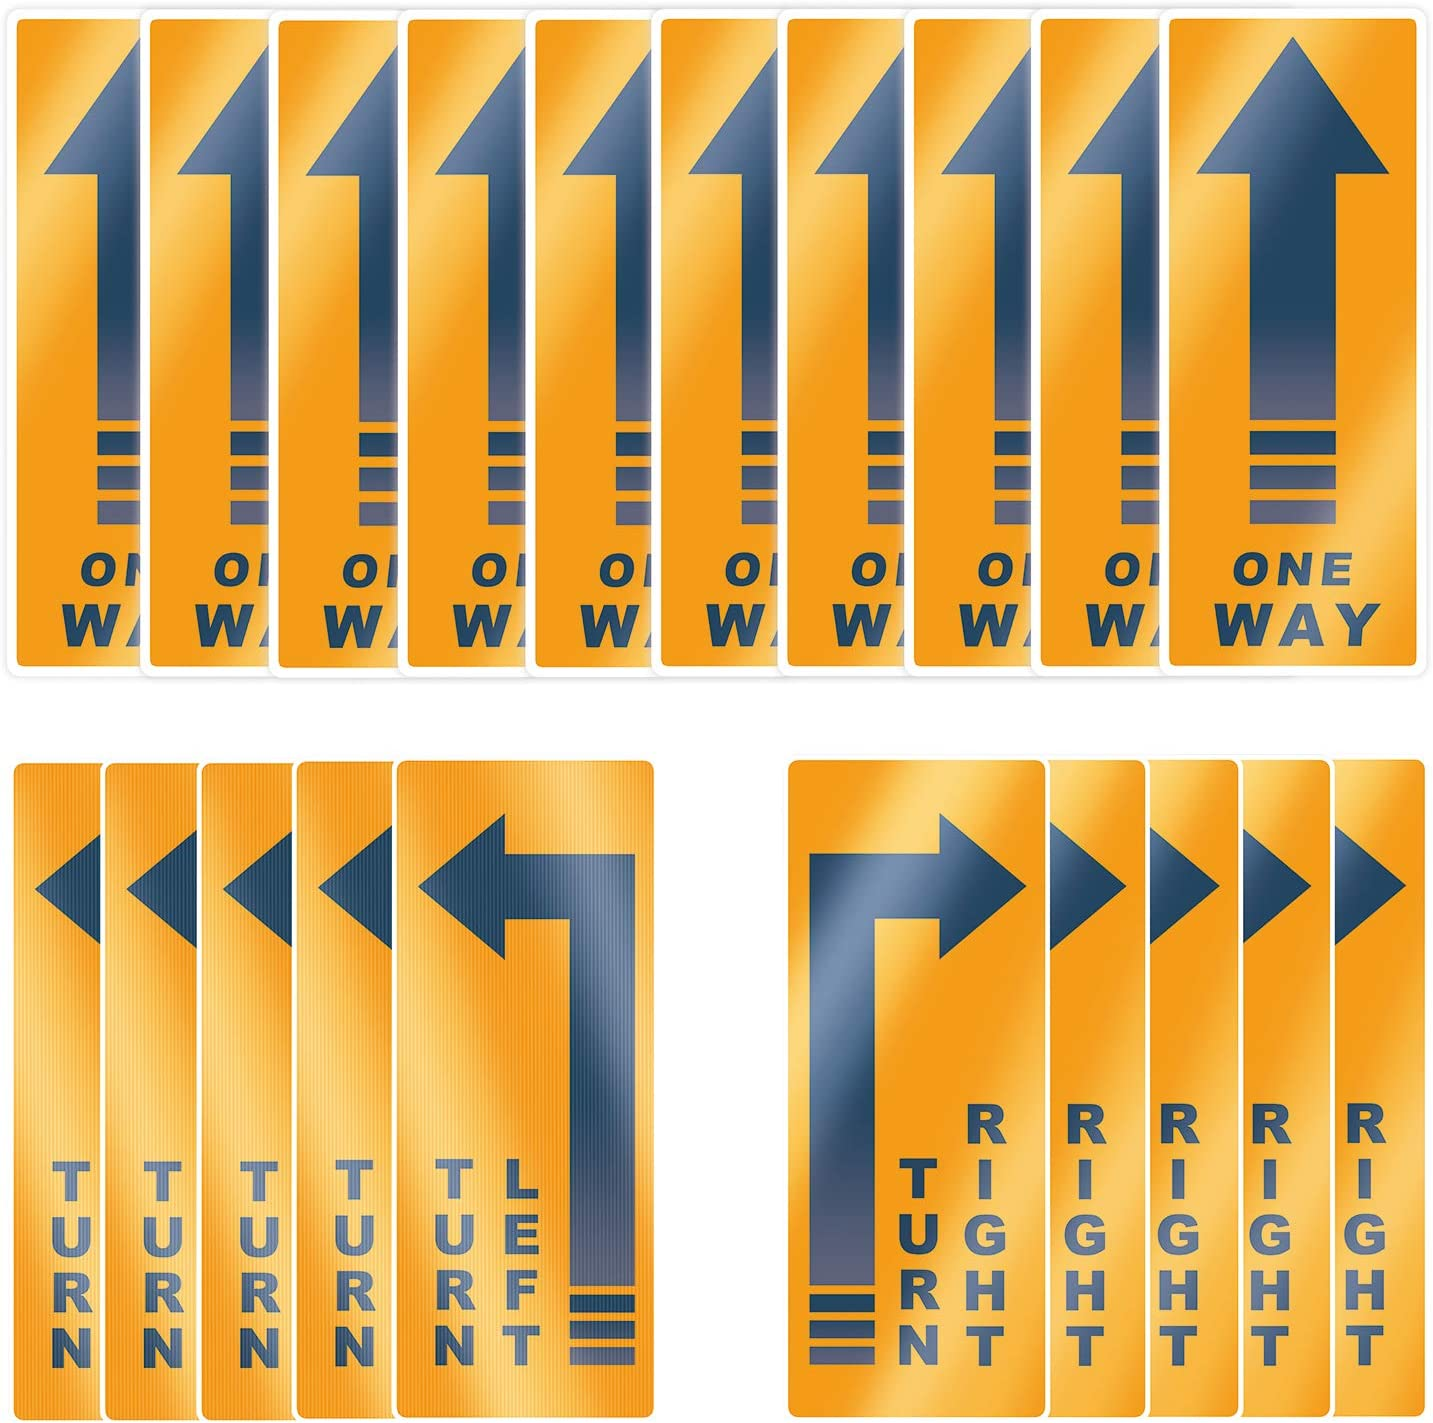 """Acessorz One Way Floor Decal Sign, Turn Left/Right Store Sign, 5""""×12"""" Directional Arrow Floor Sticker One Way Vinyl Decal Non-Slip Removable Reusable Business Office Grade Arrow Sign Markers - 20 Pack"""